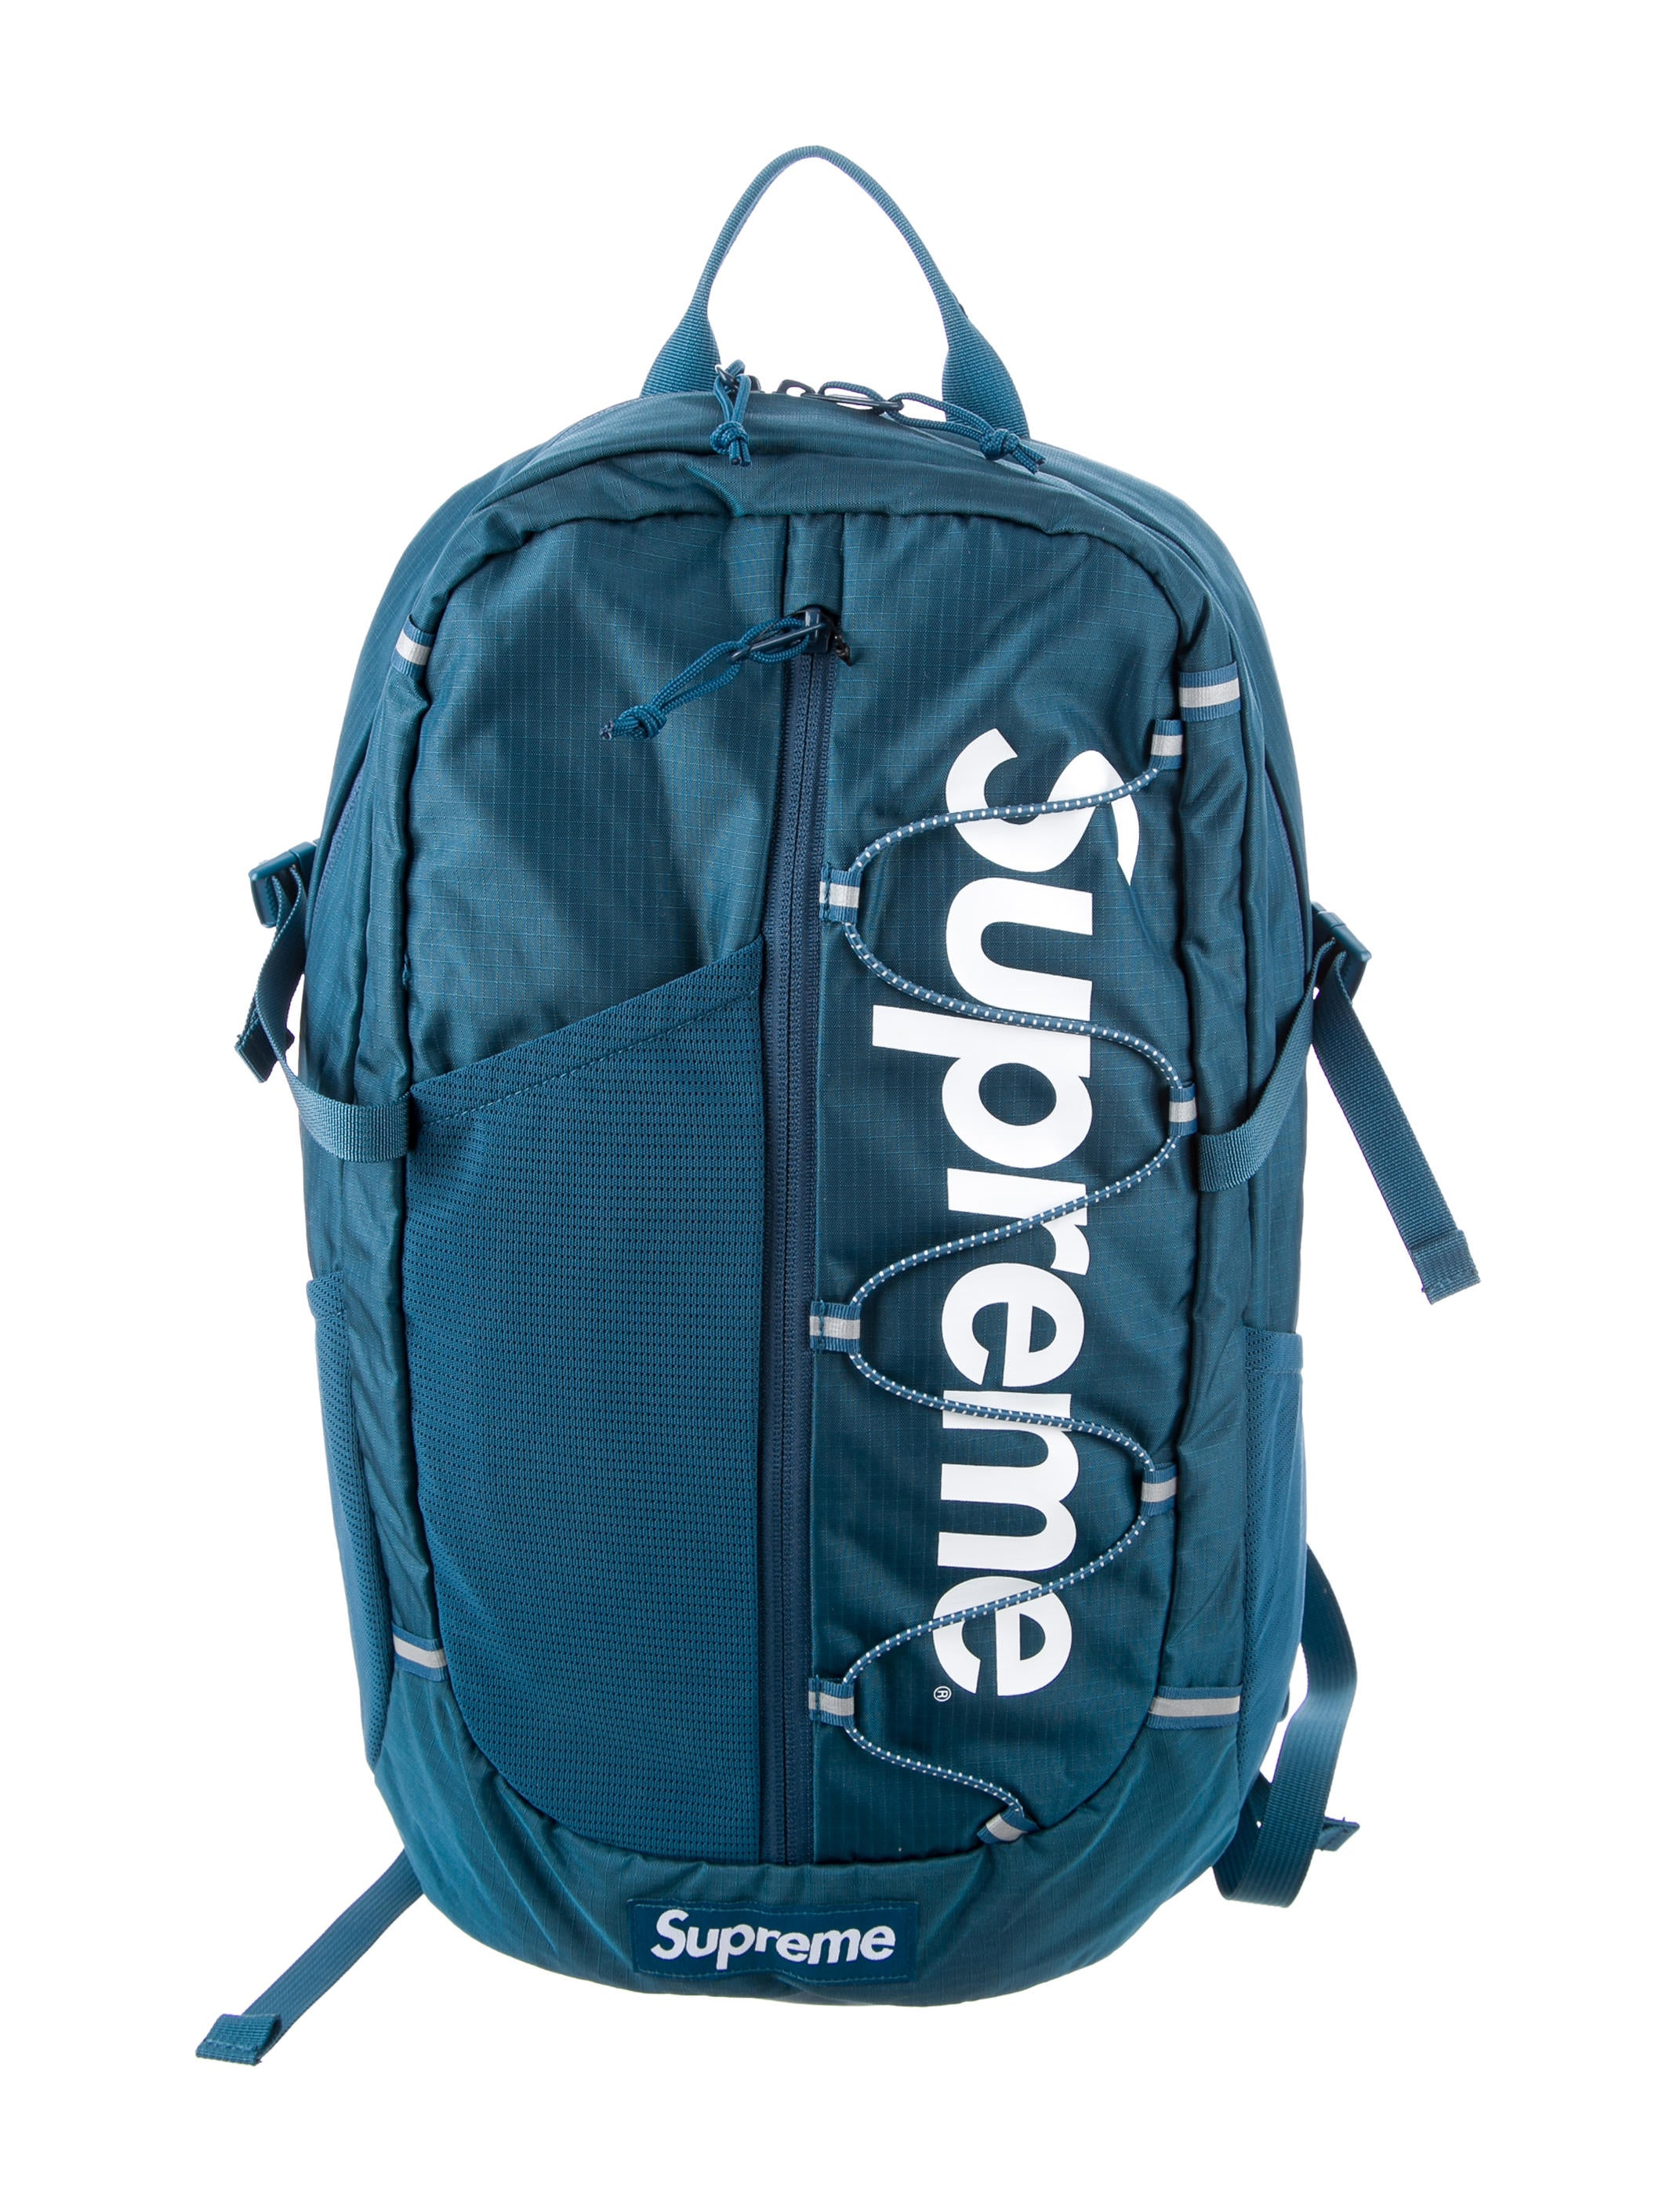 Supreme Logo Travel Backpack w/ Tags - Bags - WSPME20194 | The RealReal